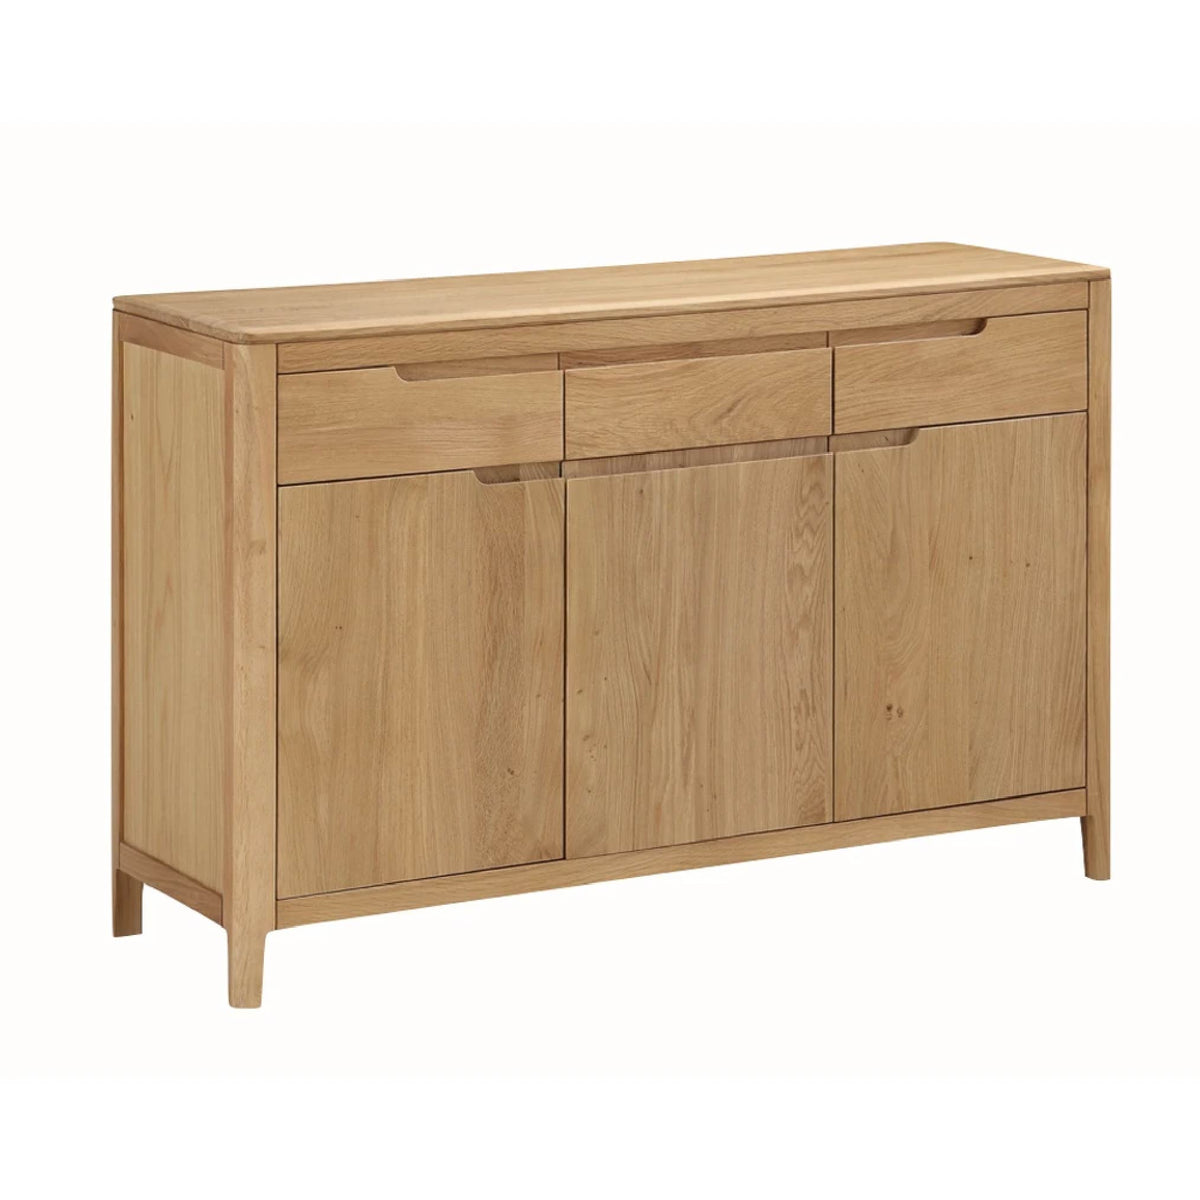 Dunmore Oak Large Sideboard by Roseland Furniture